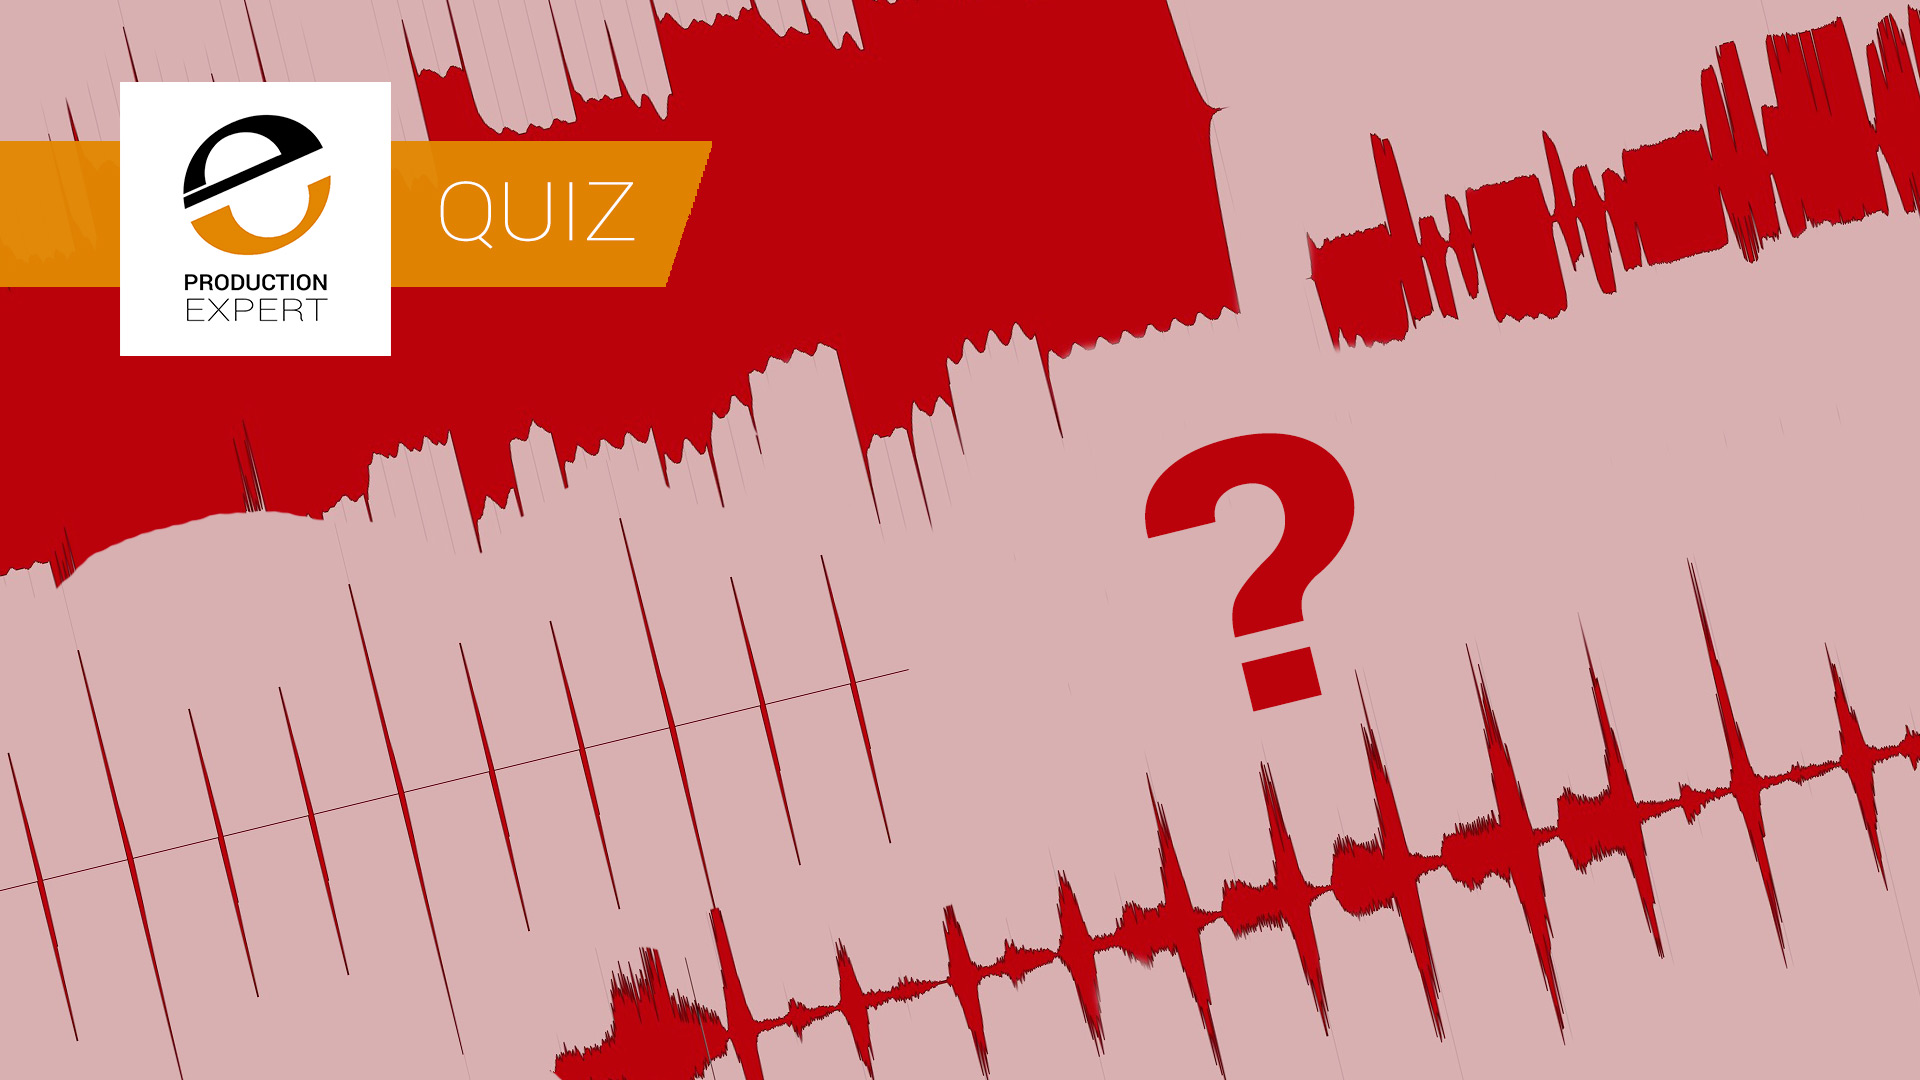 Quiz - Can You Identify Ten Instruments From Audio Waveforms? Volume